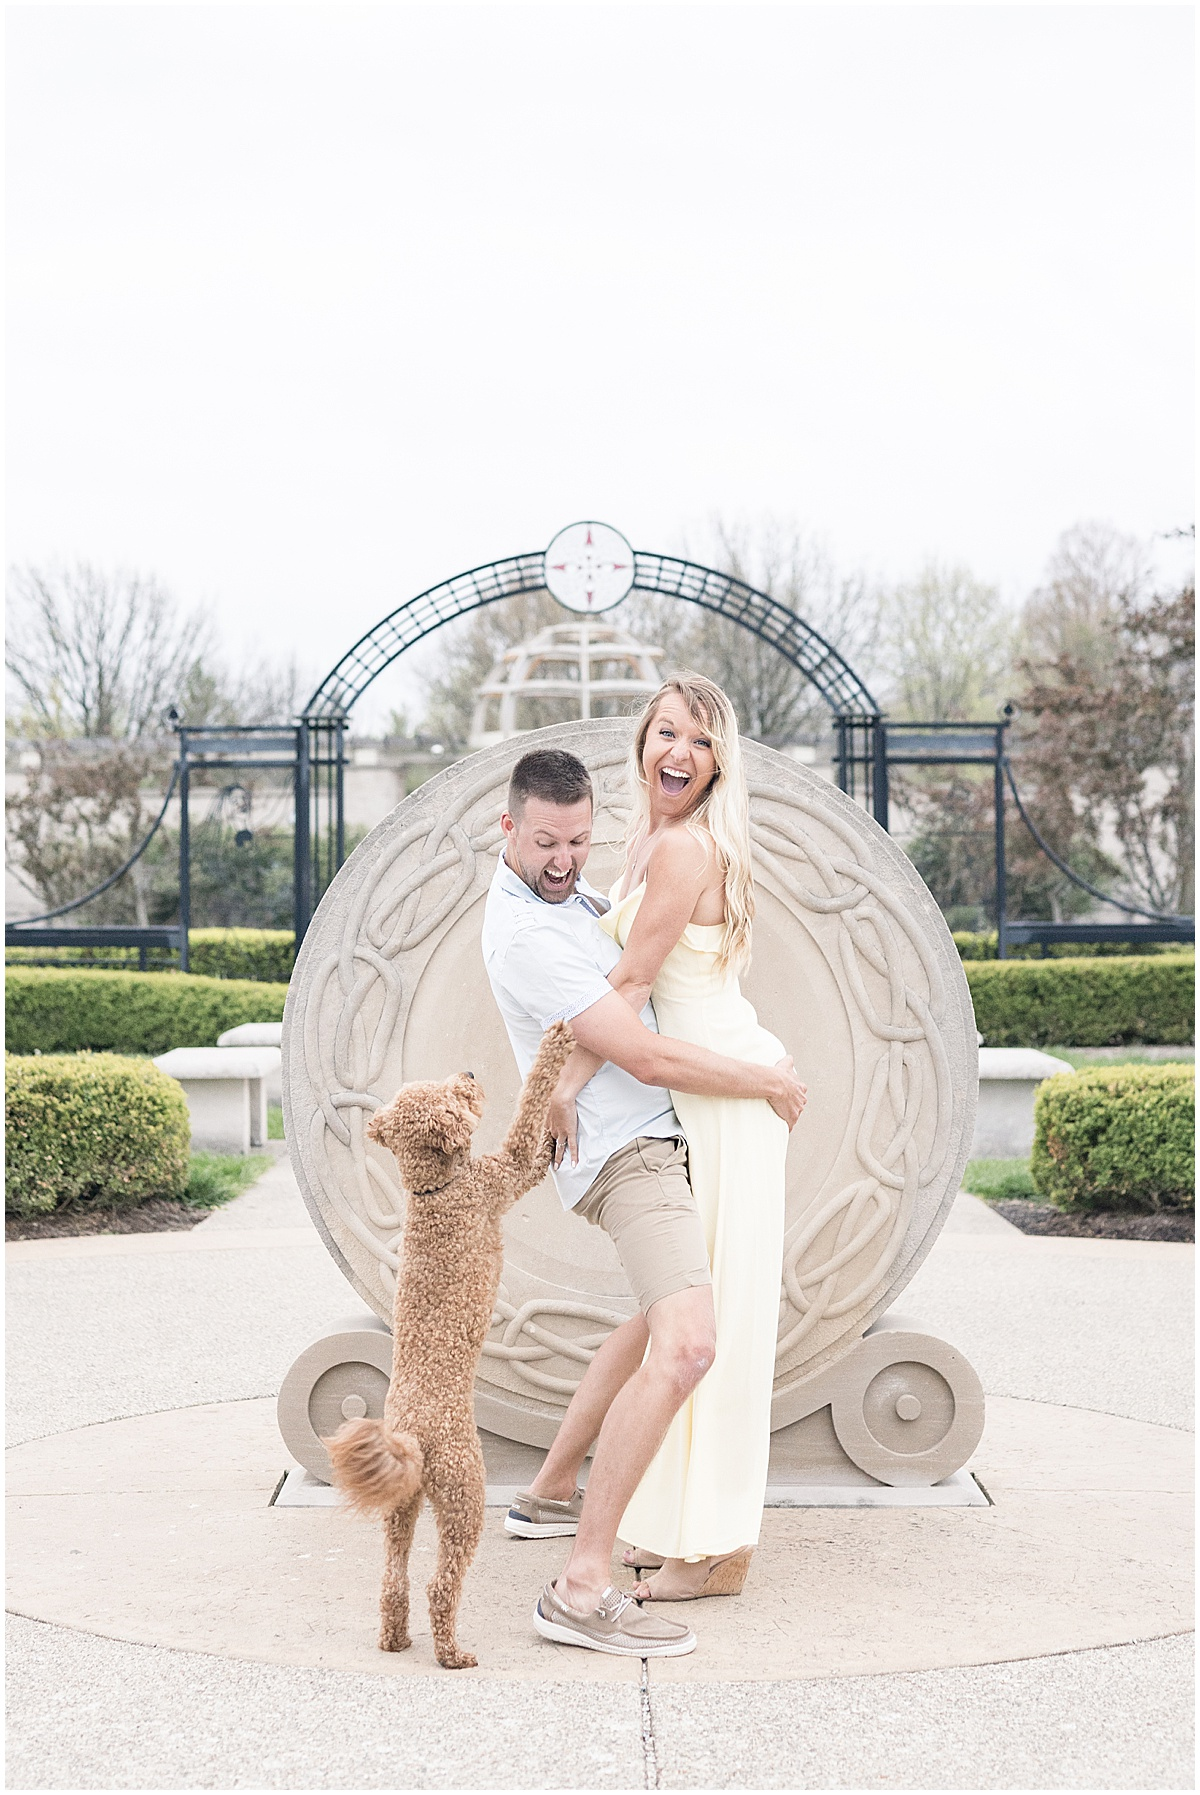 Coxhall Gardens Engagement Photos in Carmel, Indiana with dog